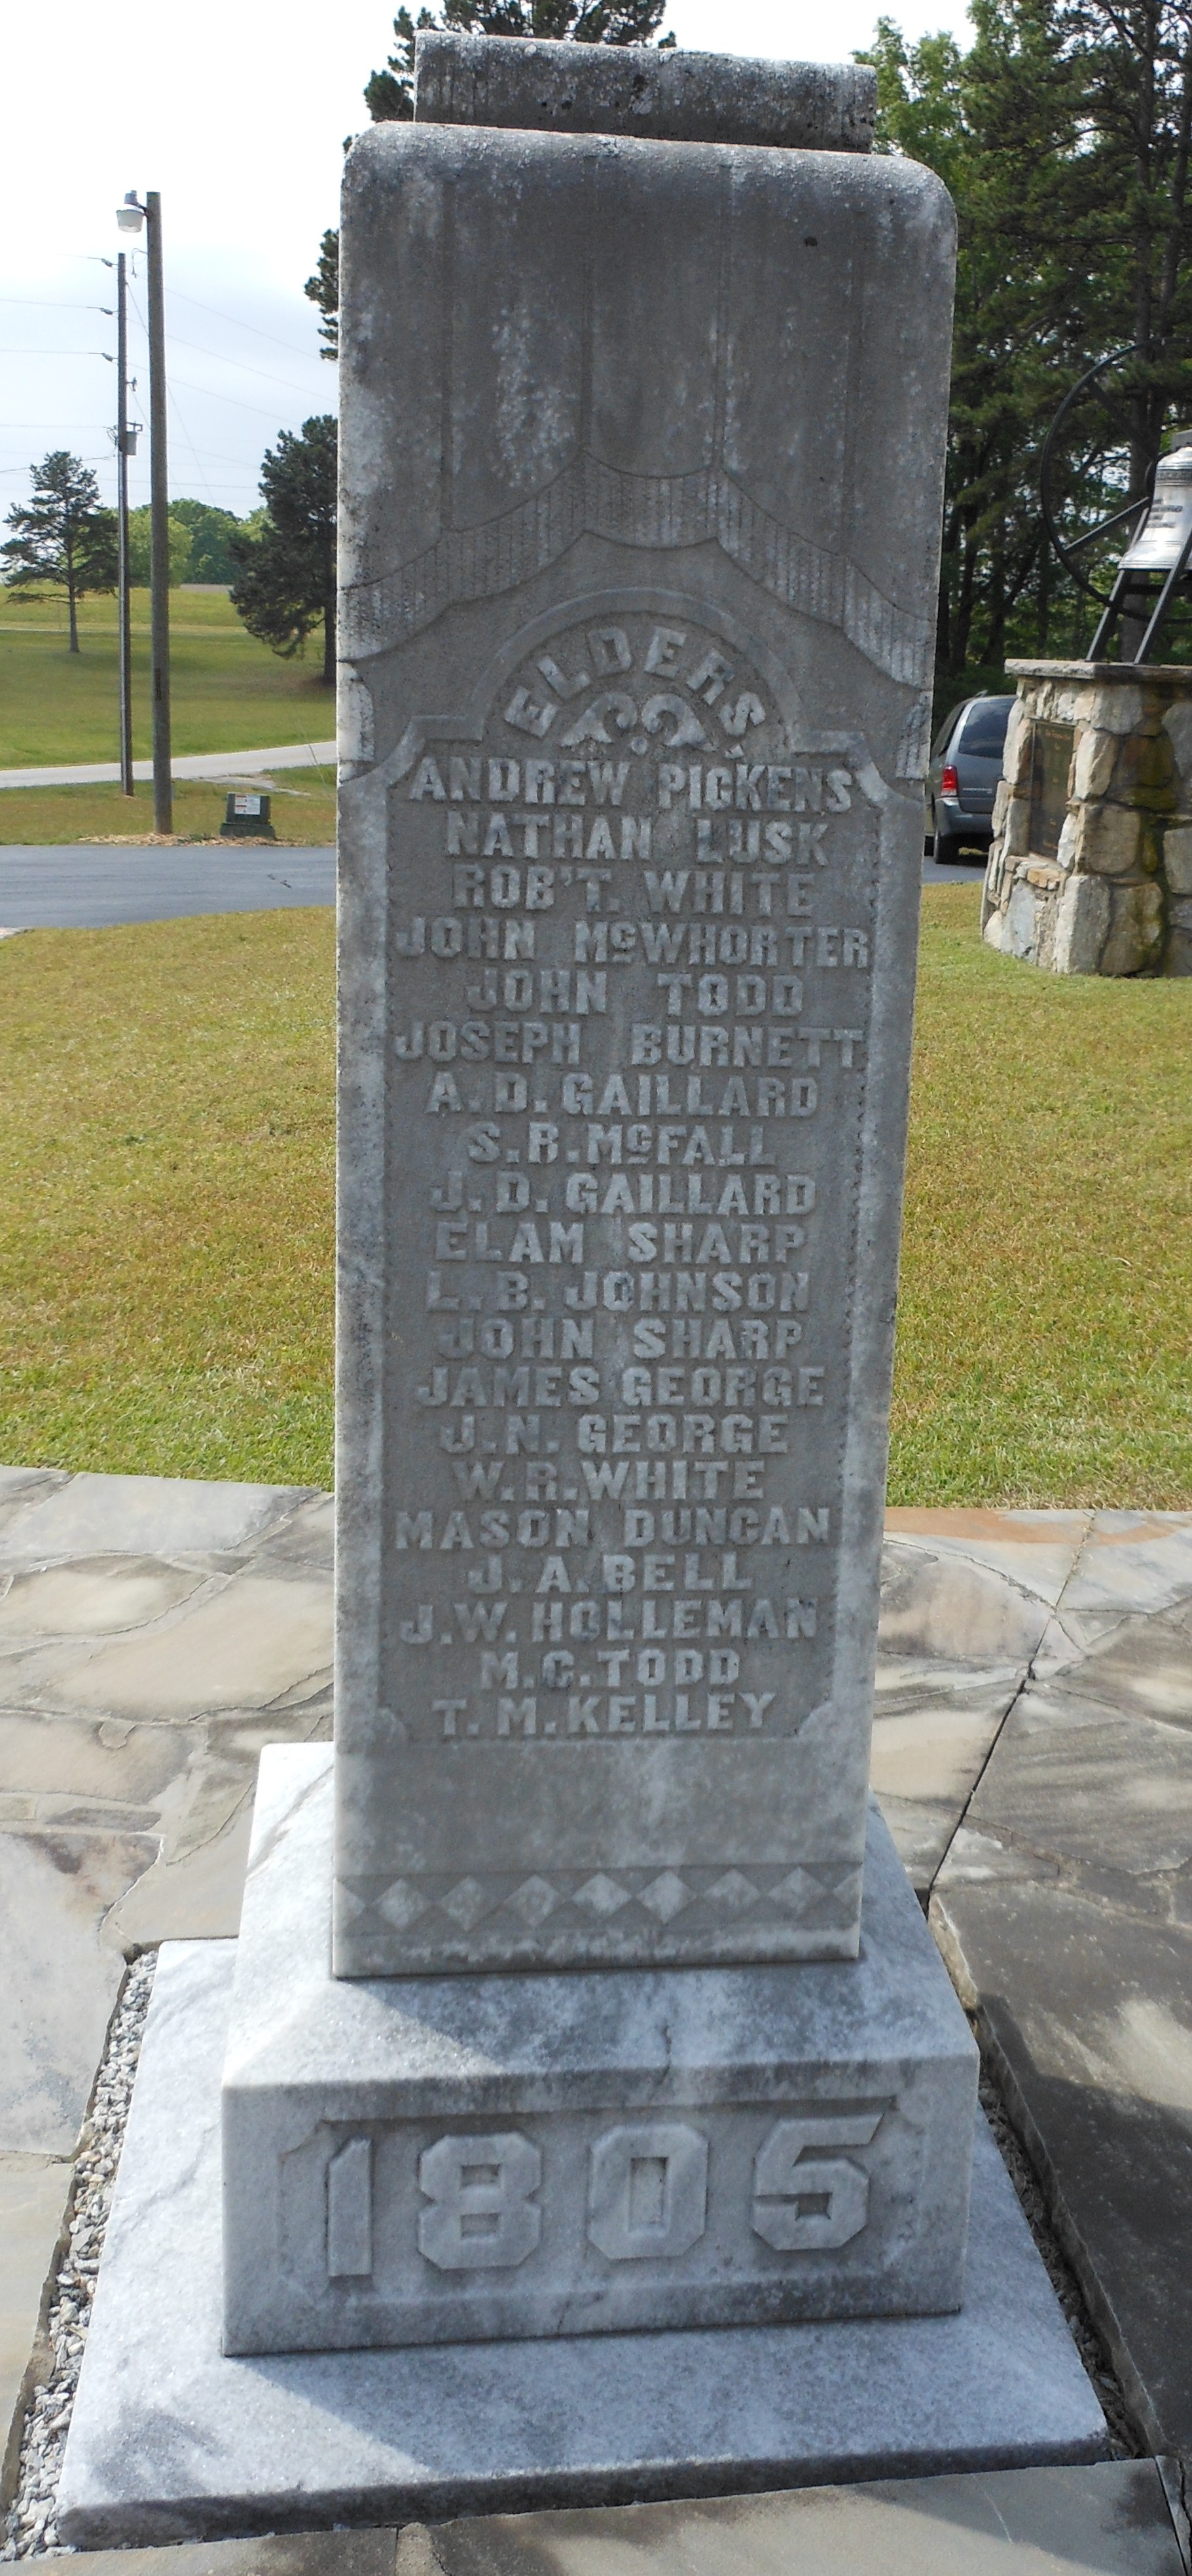 On August 10, 1905, at 3:30 o'clock the  centennial monument  was unveiled by Cornelia Pickett, a descendant of Samuel McFall, and Kate Sharp, a descendant of John Sharp. The marble monument stands 8½ feet and has engraved on it the names of the officers of the church from 1805−1905.